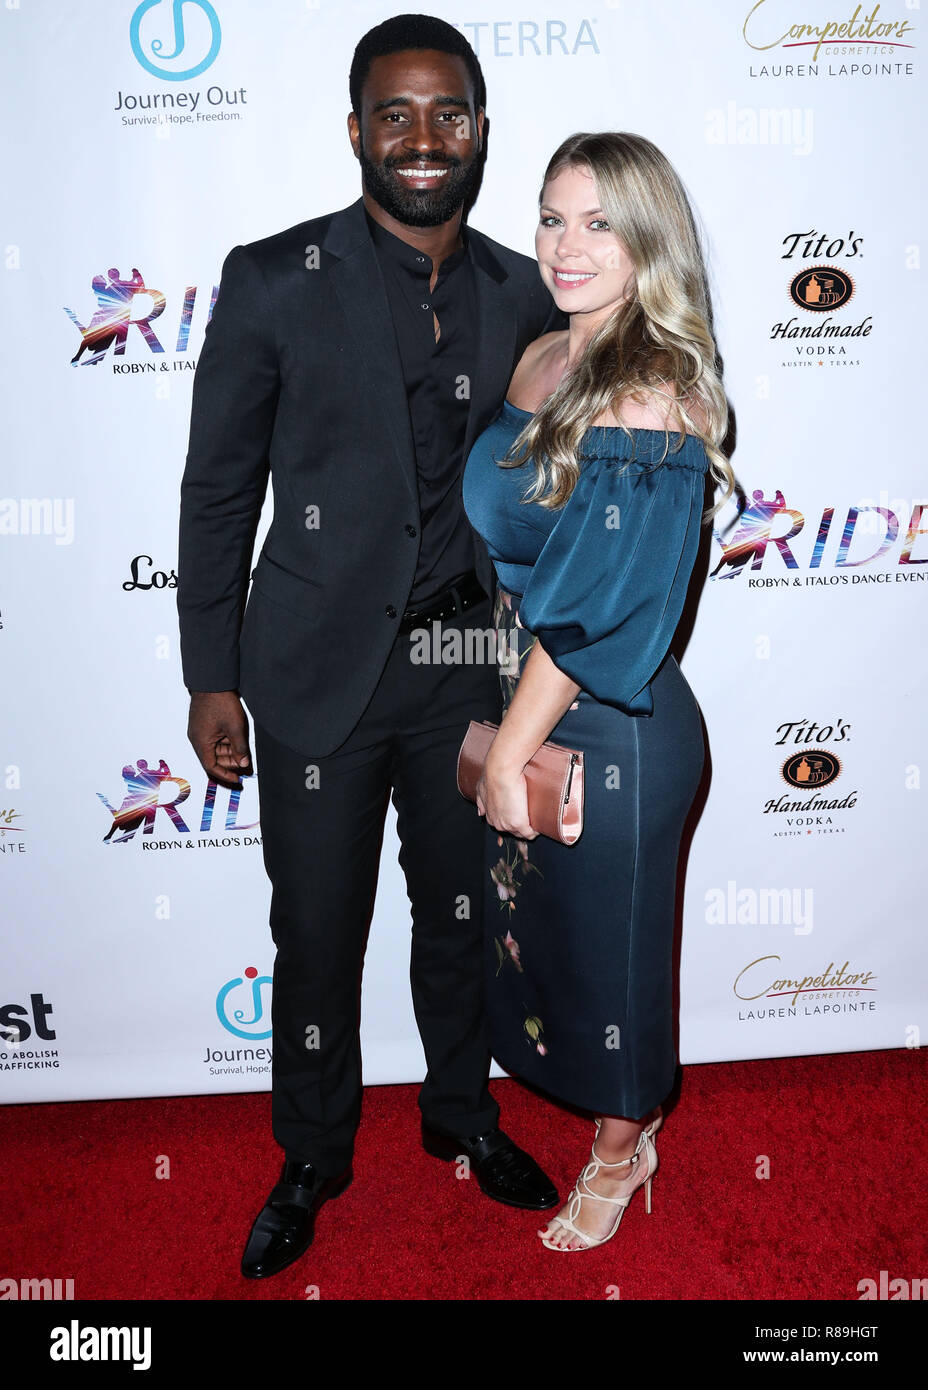 Santa Monica Los Angeles Ca Usa September 29 Keo Motsepe Evanna Lynch At The Ride Foundation S 2nd Annual Dance For Freedom Held At The Broad Stage On September 29 2018 In